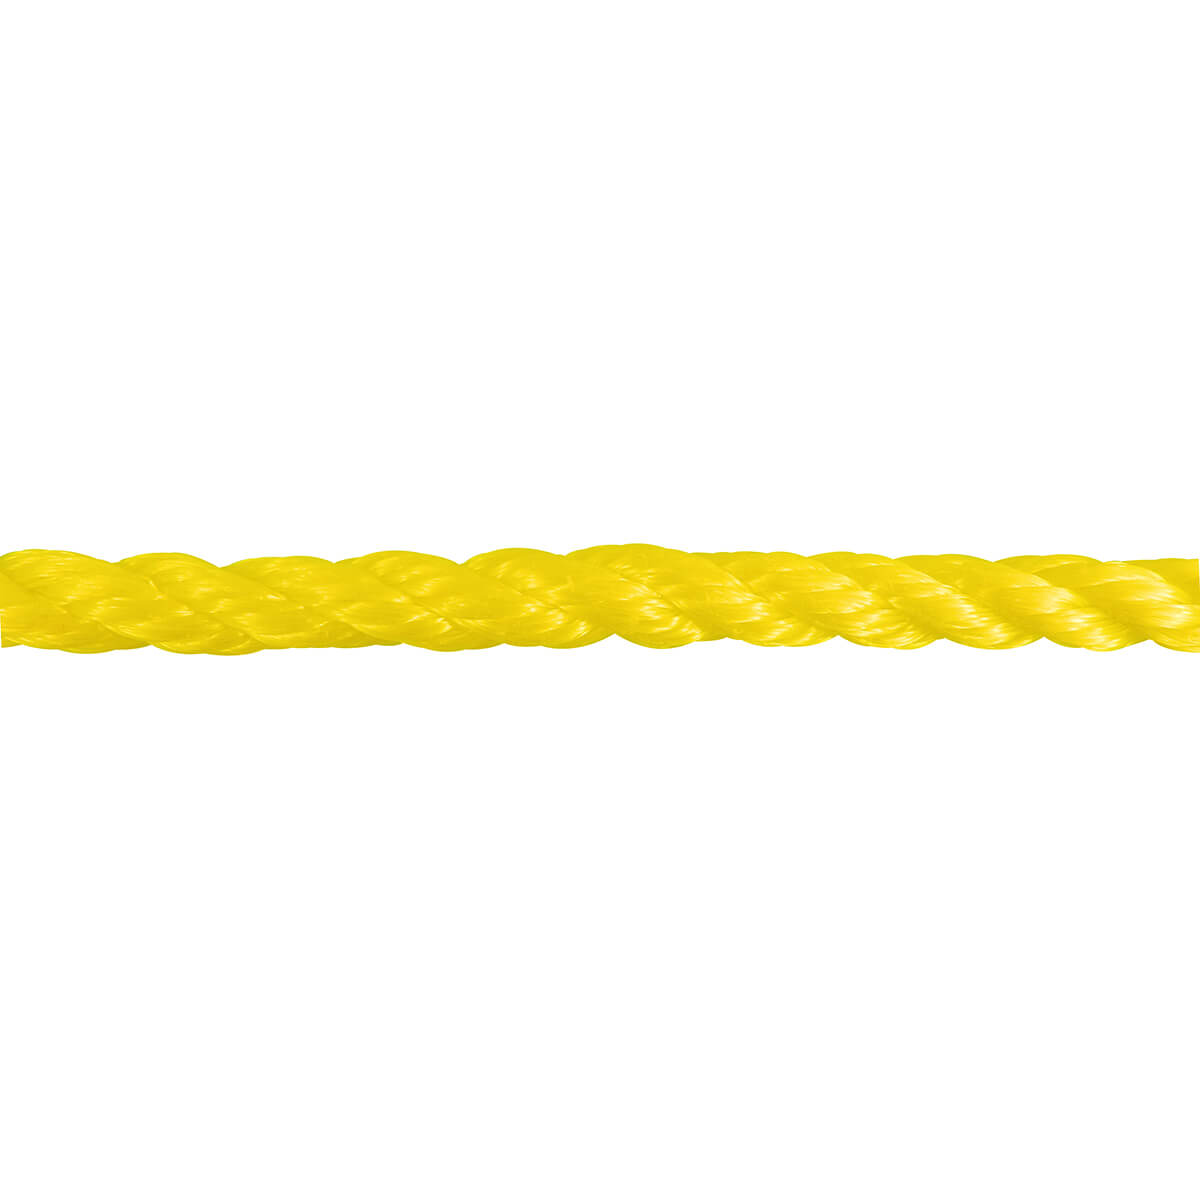 "Polypropylene Twisted Rope - Yellow - 3/16"" (price per foot)"